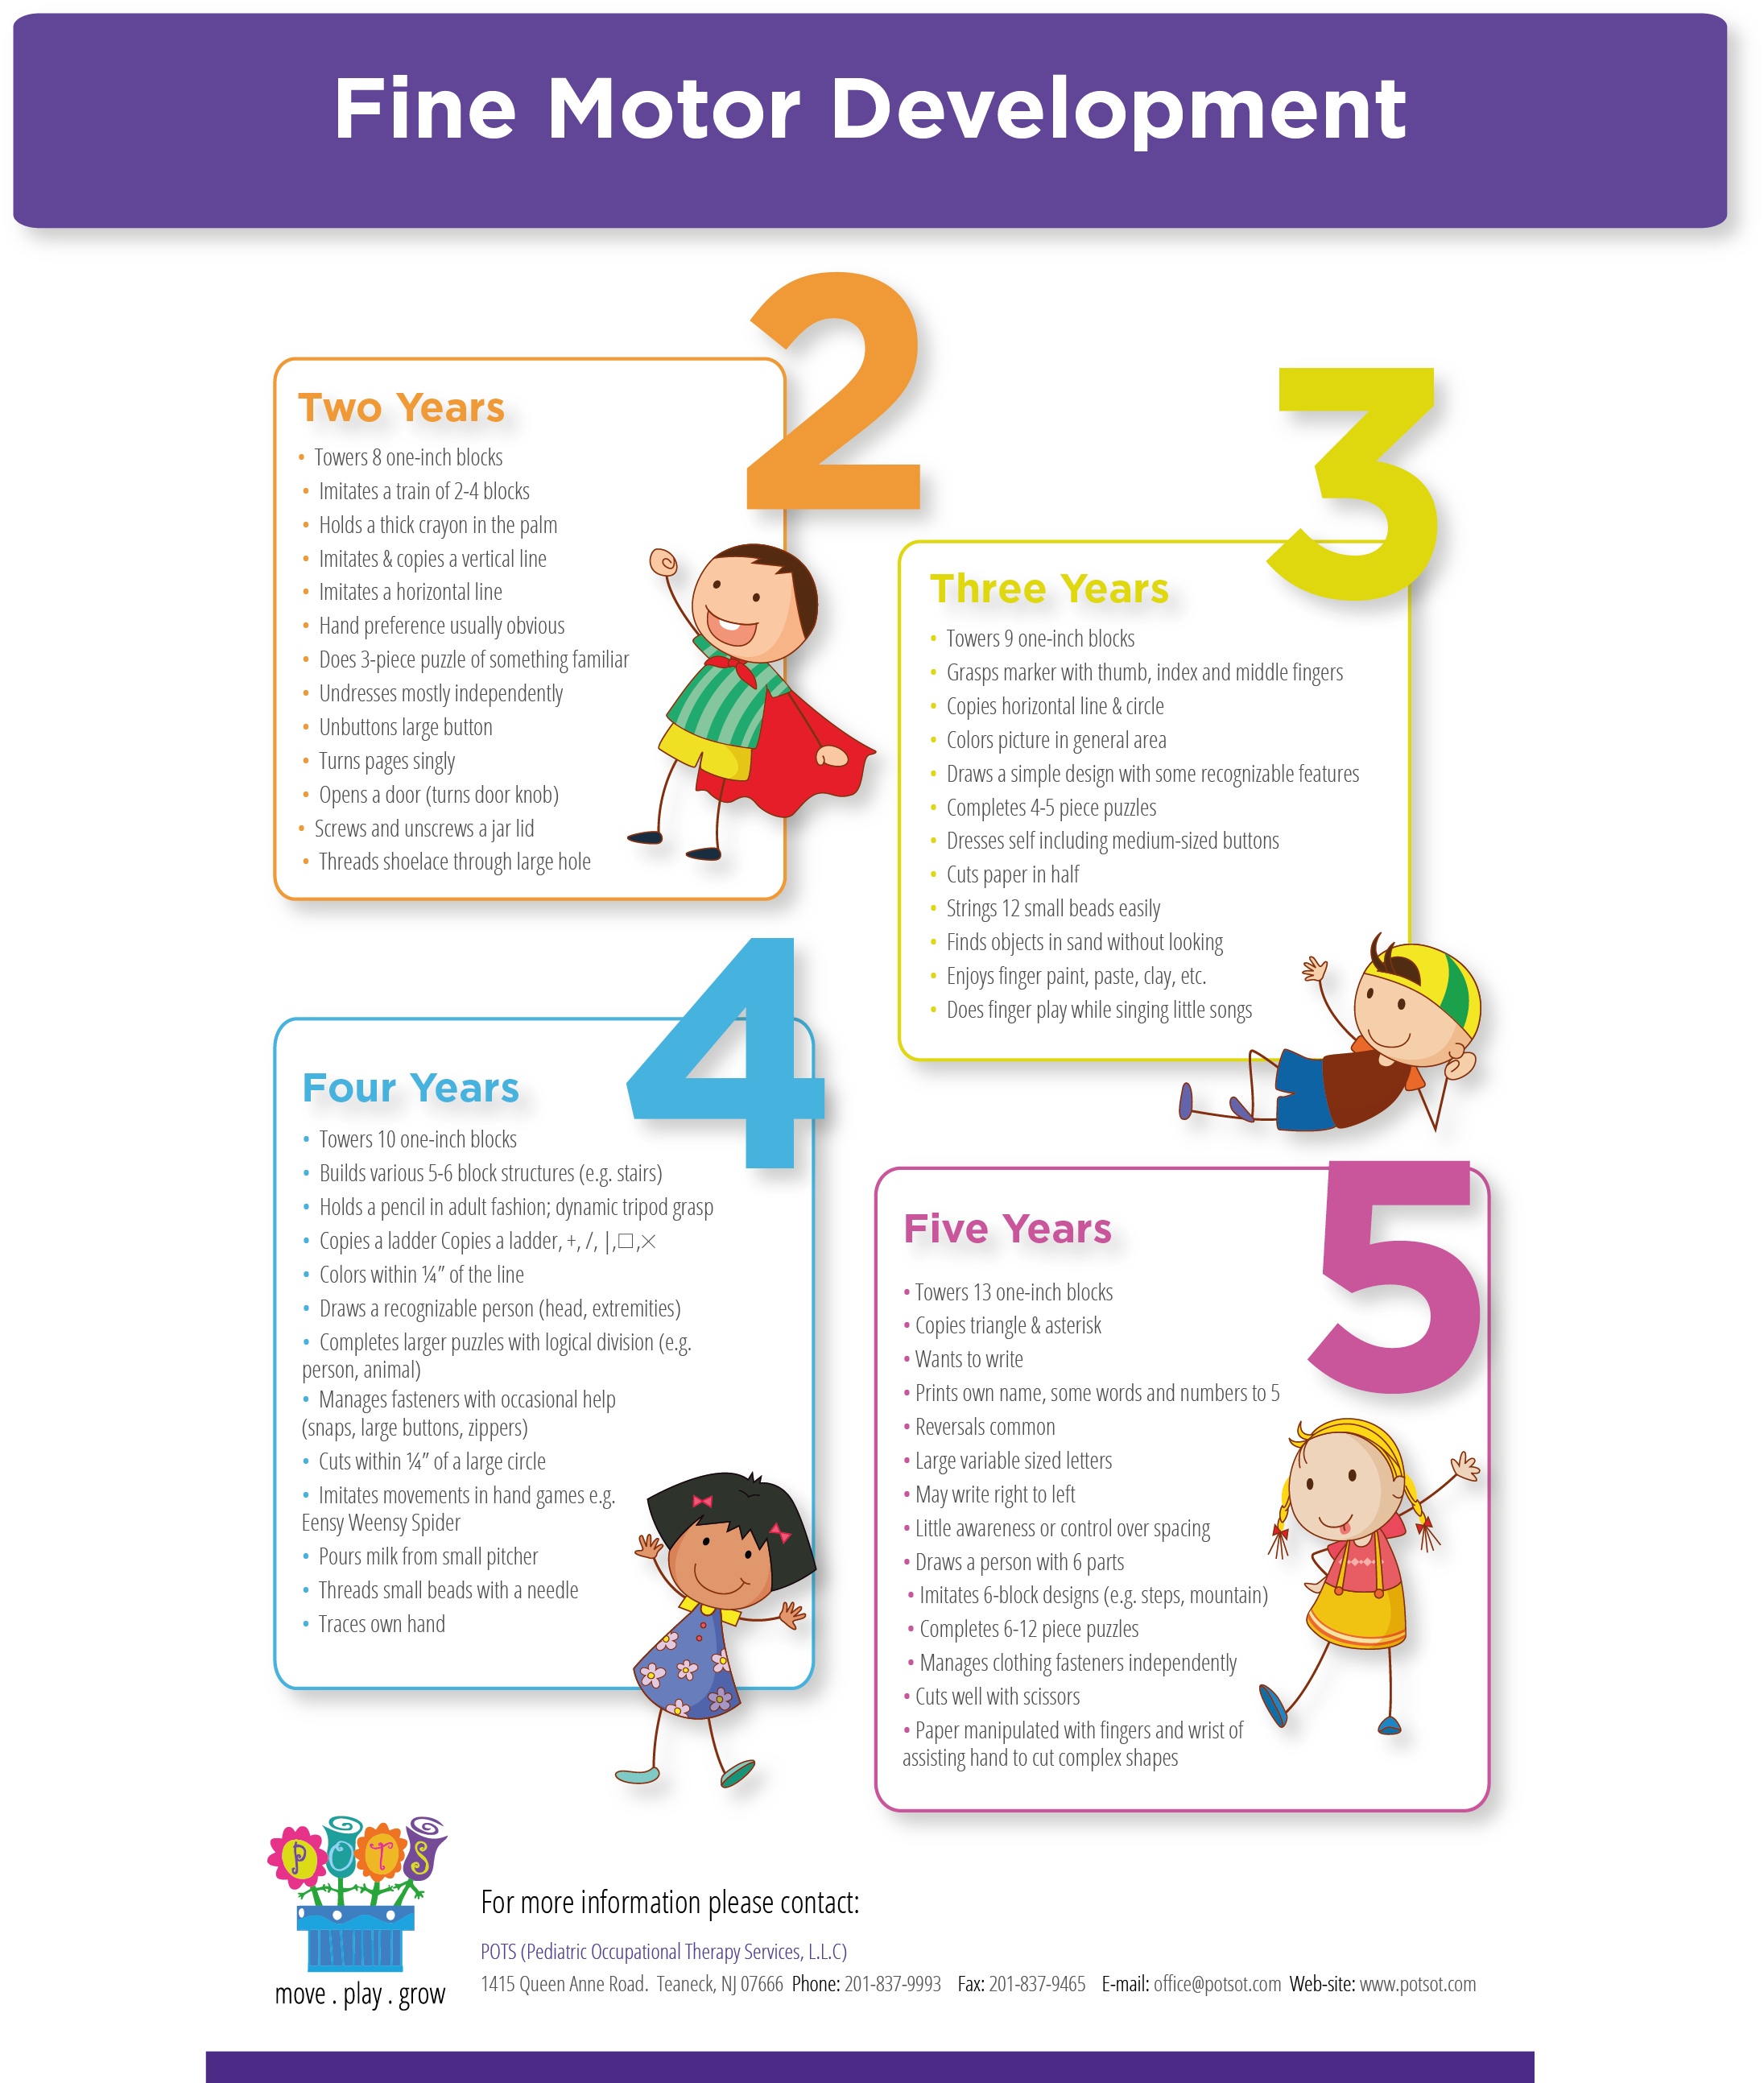 Fine Motor Development Infographic From Pediatric Ot